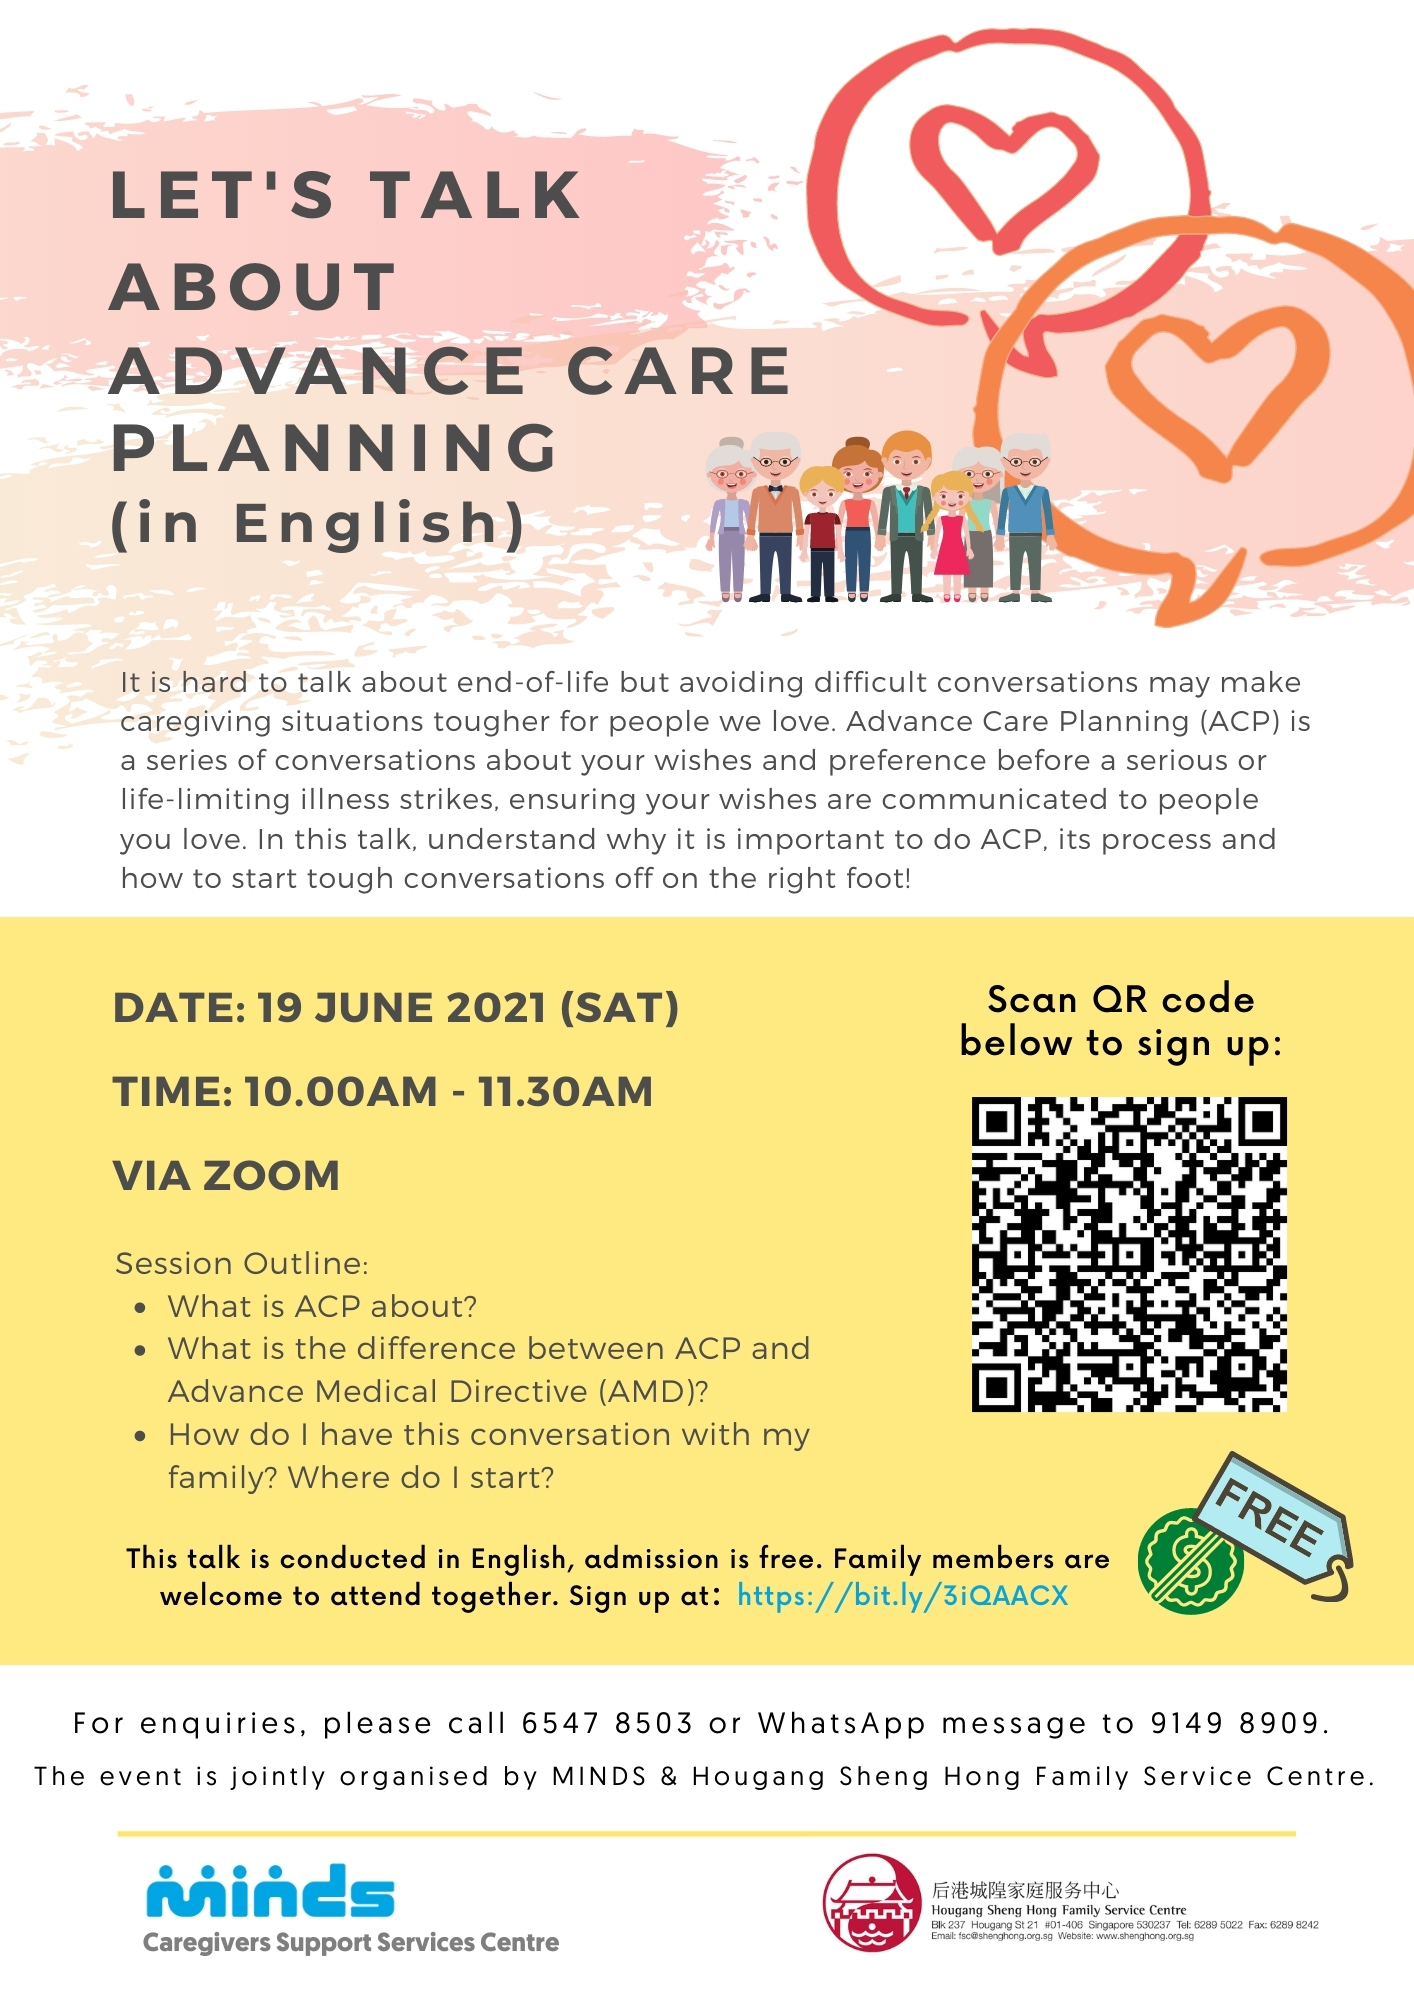 Let's Talk About Advance Care Planning